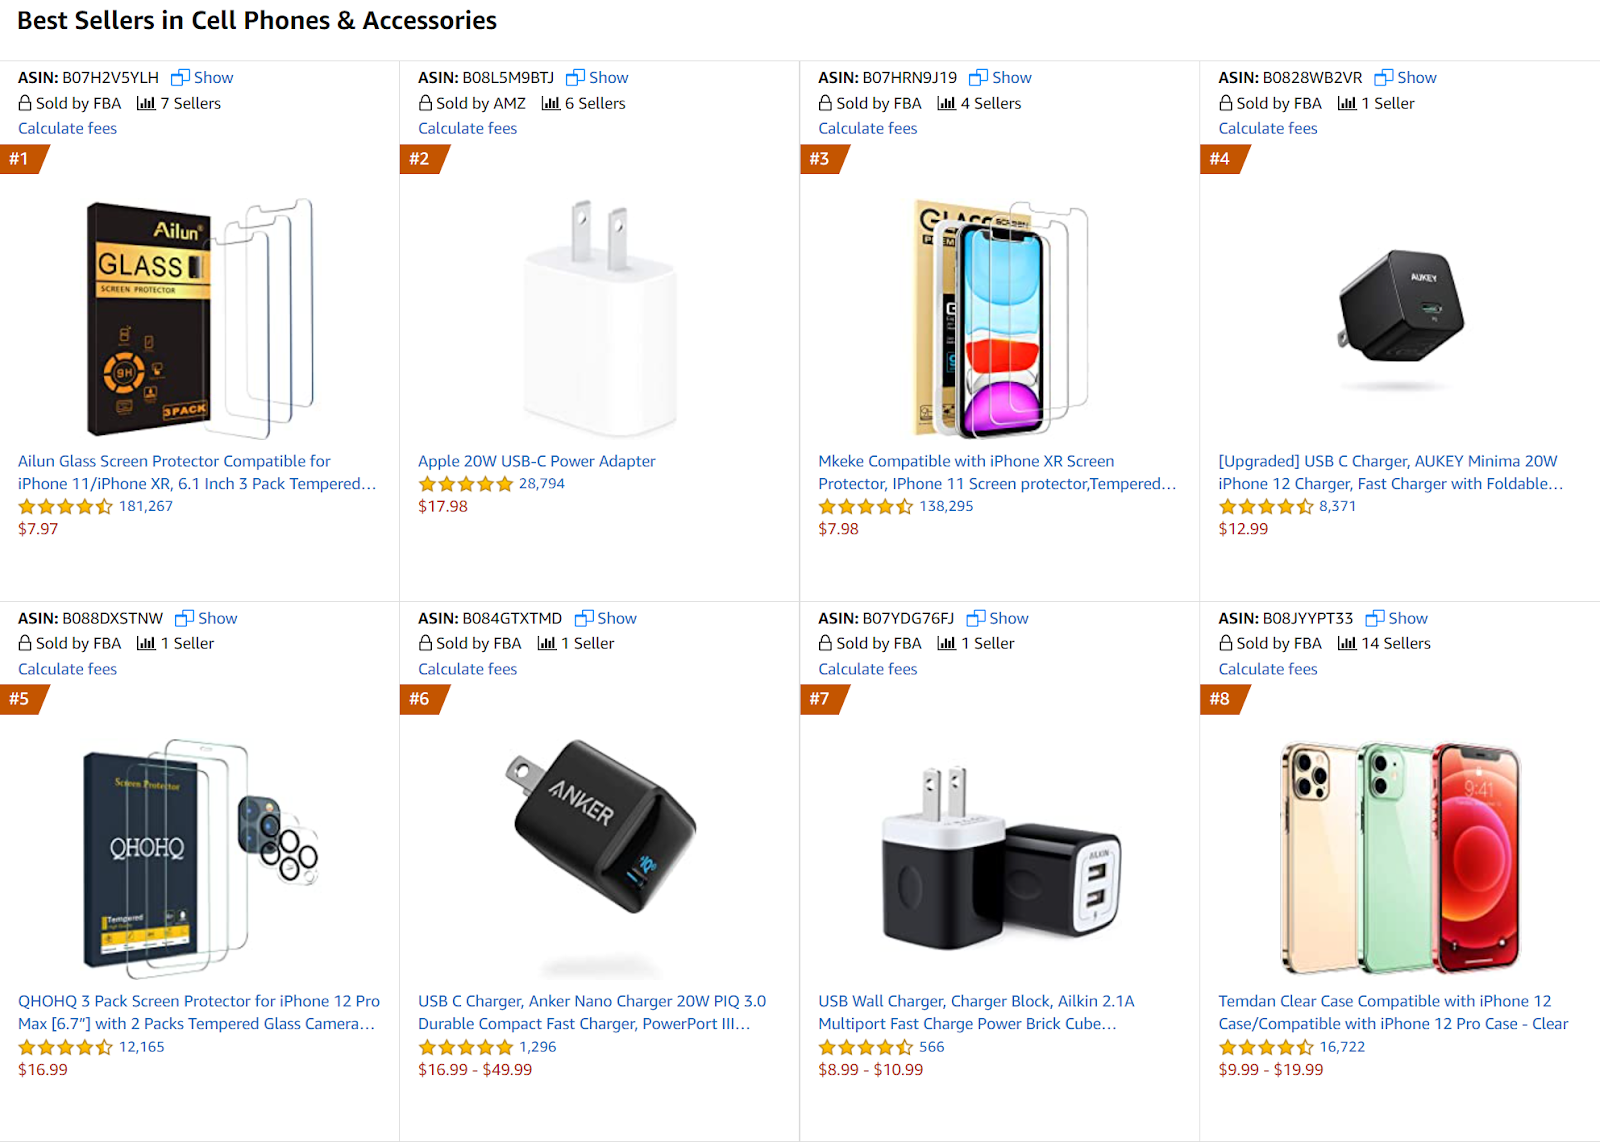 Best Selling Amazon Products in 2021